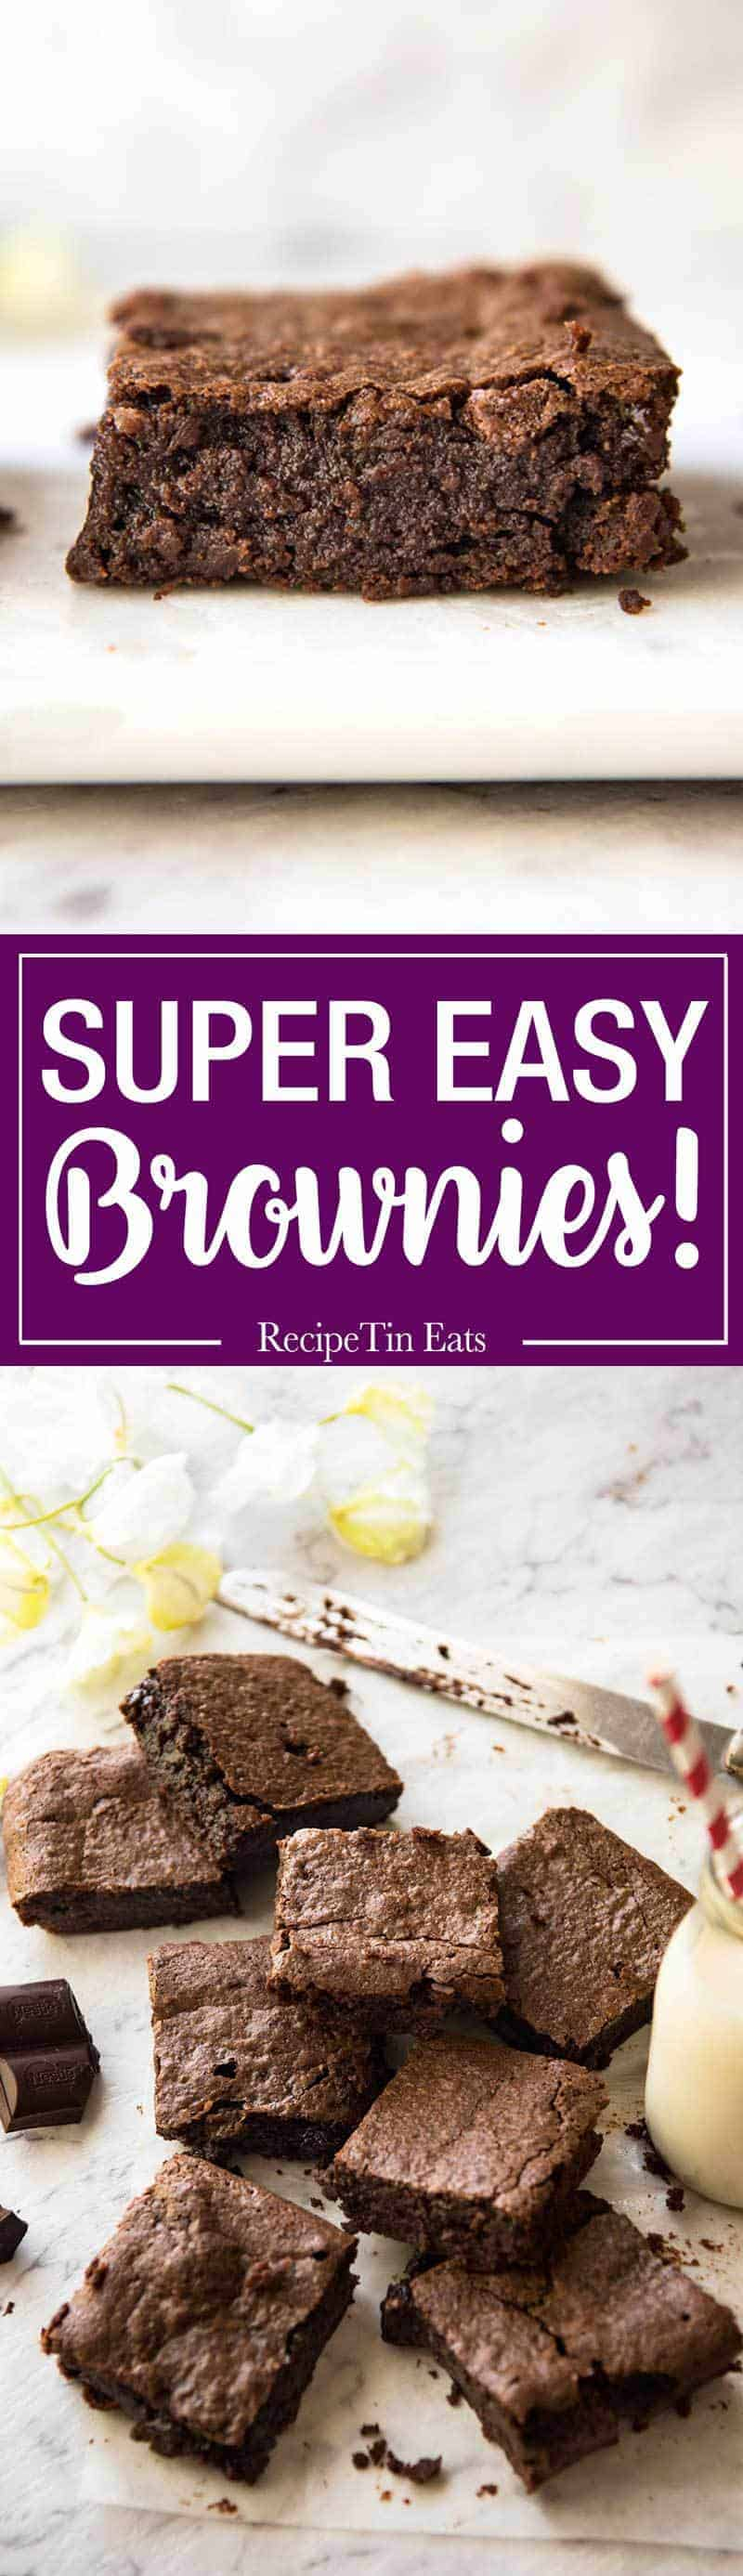 Easy Chocolate Brownies - 5 minutes is all it takes to make this batter for these fudgey, moist, very chocolatey brownies! www.recipetineats.com